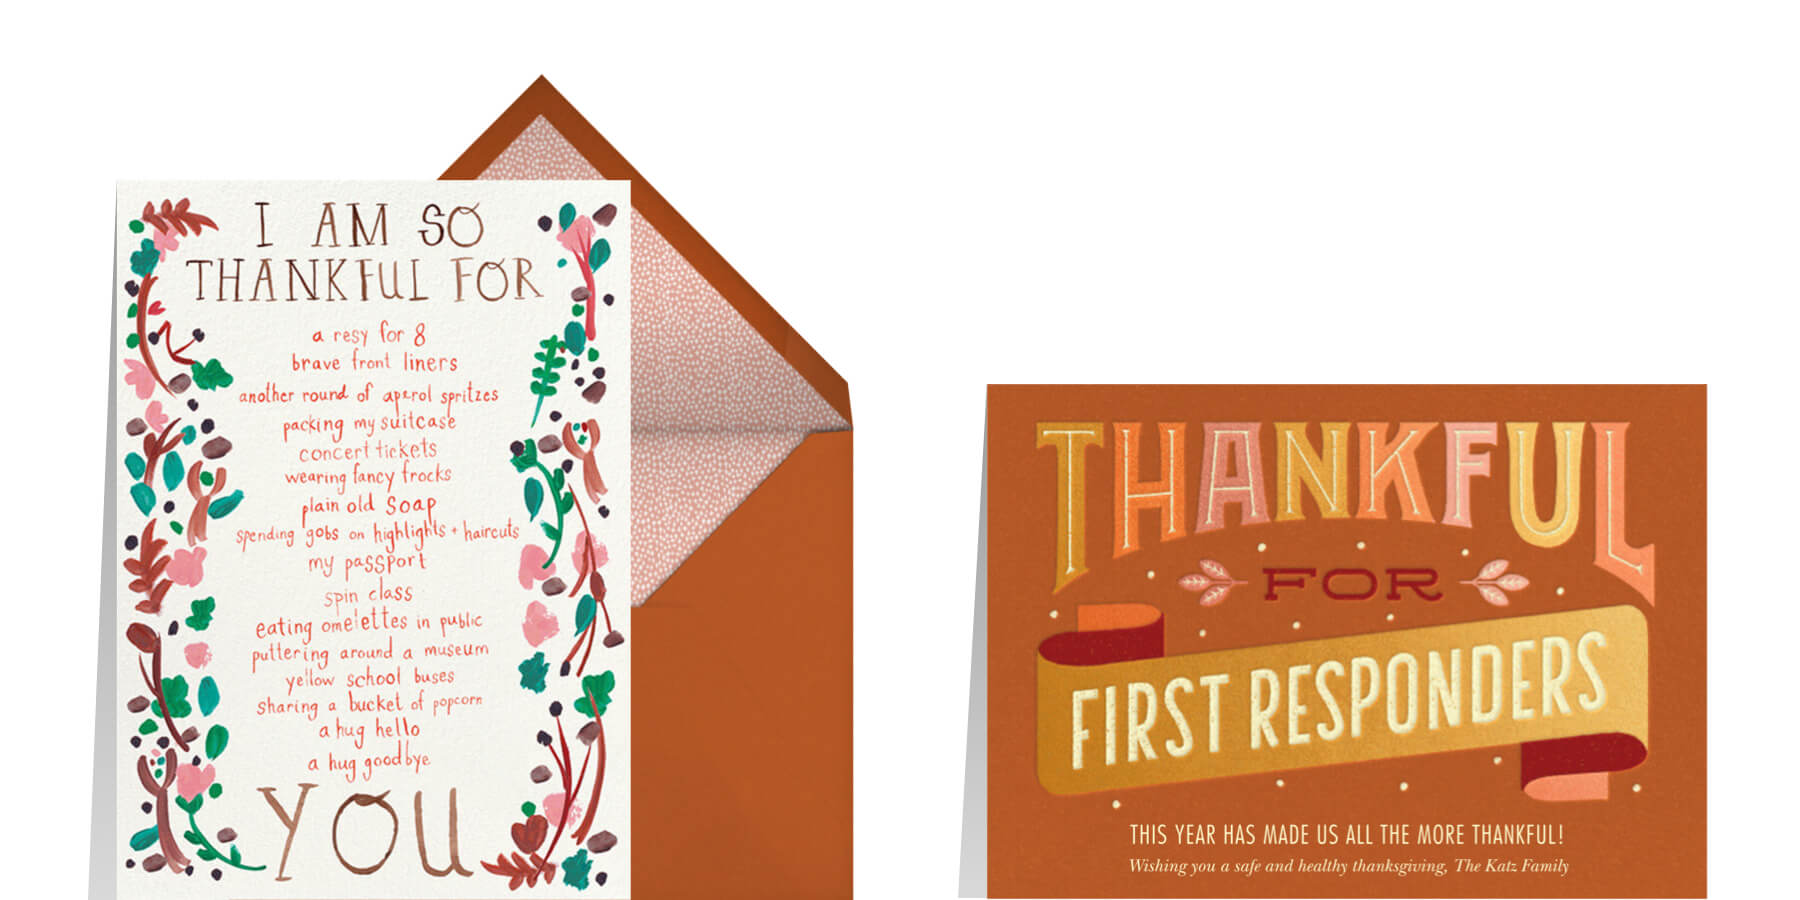 Thanksgiving greeting card wording examples from Paperless Posst